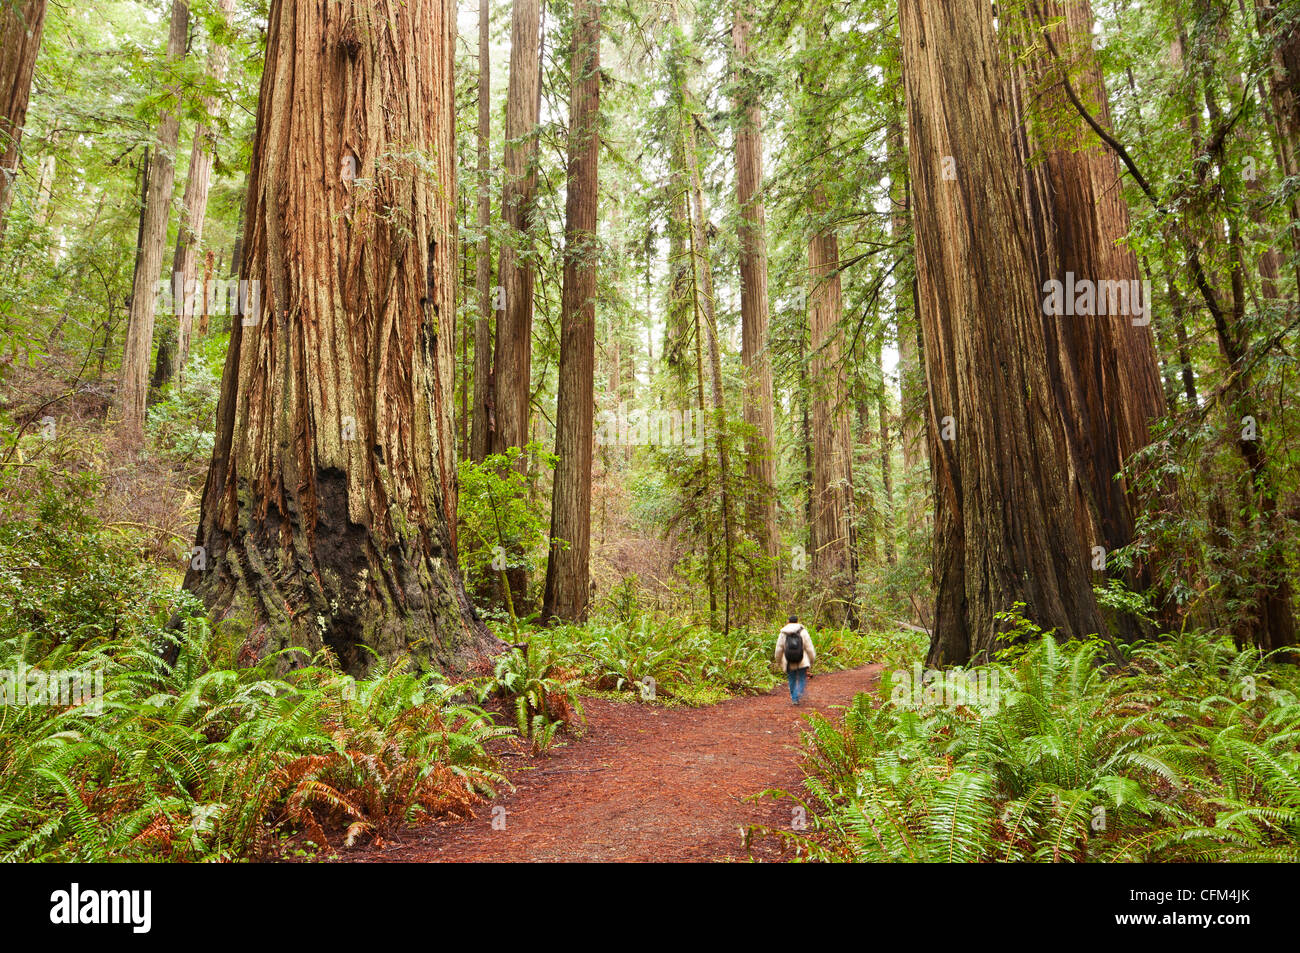 The beautiful and massive giant redwoods, Sequoia sempervirens located in the Jedediah Smith Redwoods State Park - Stock Image